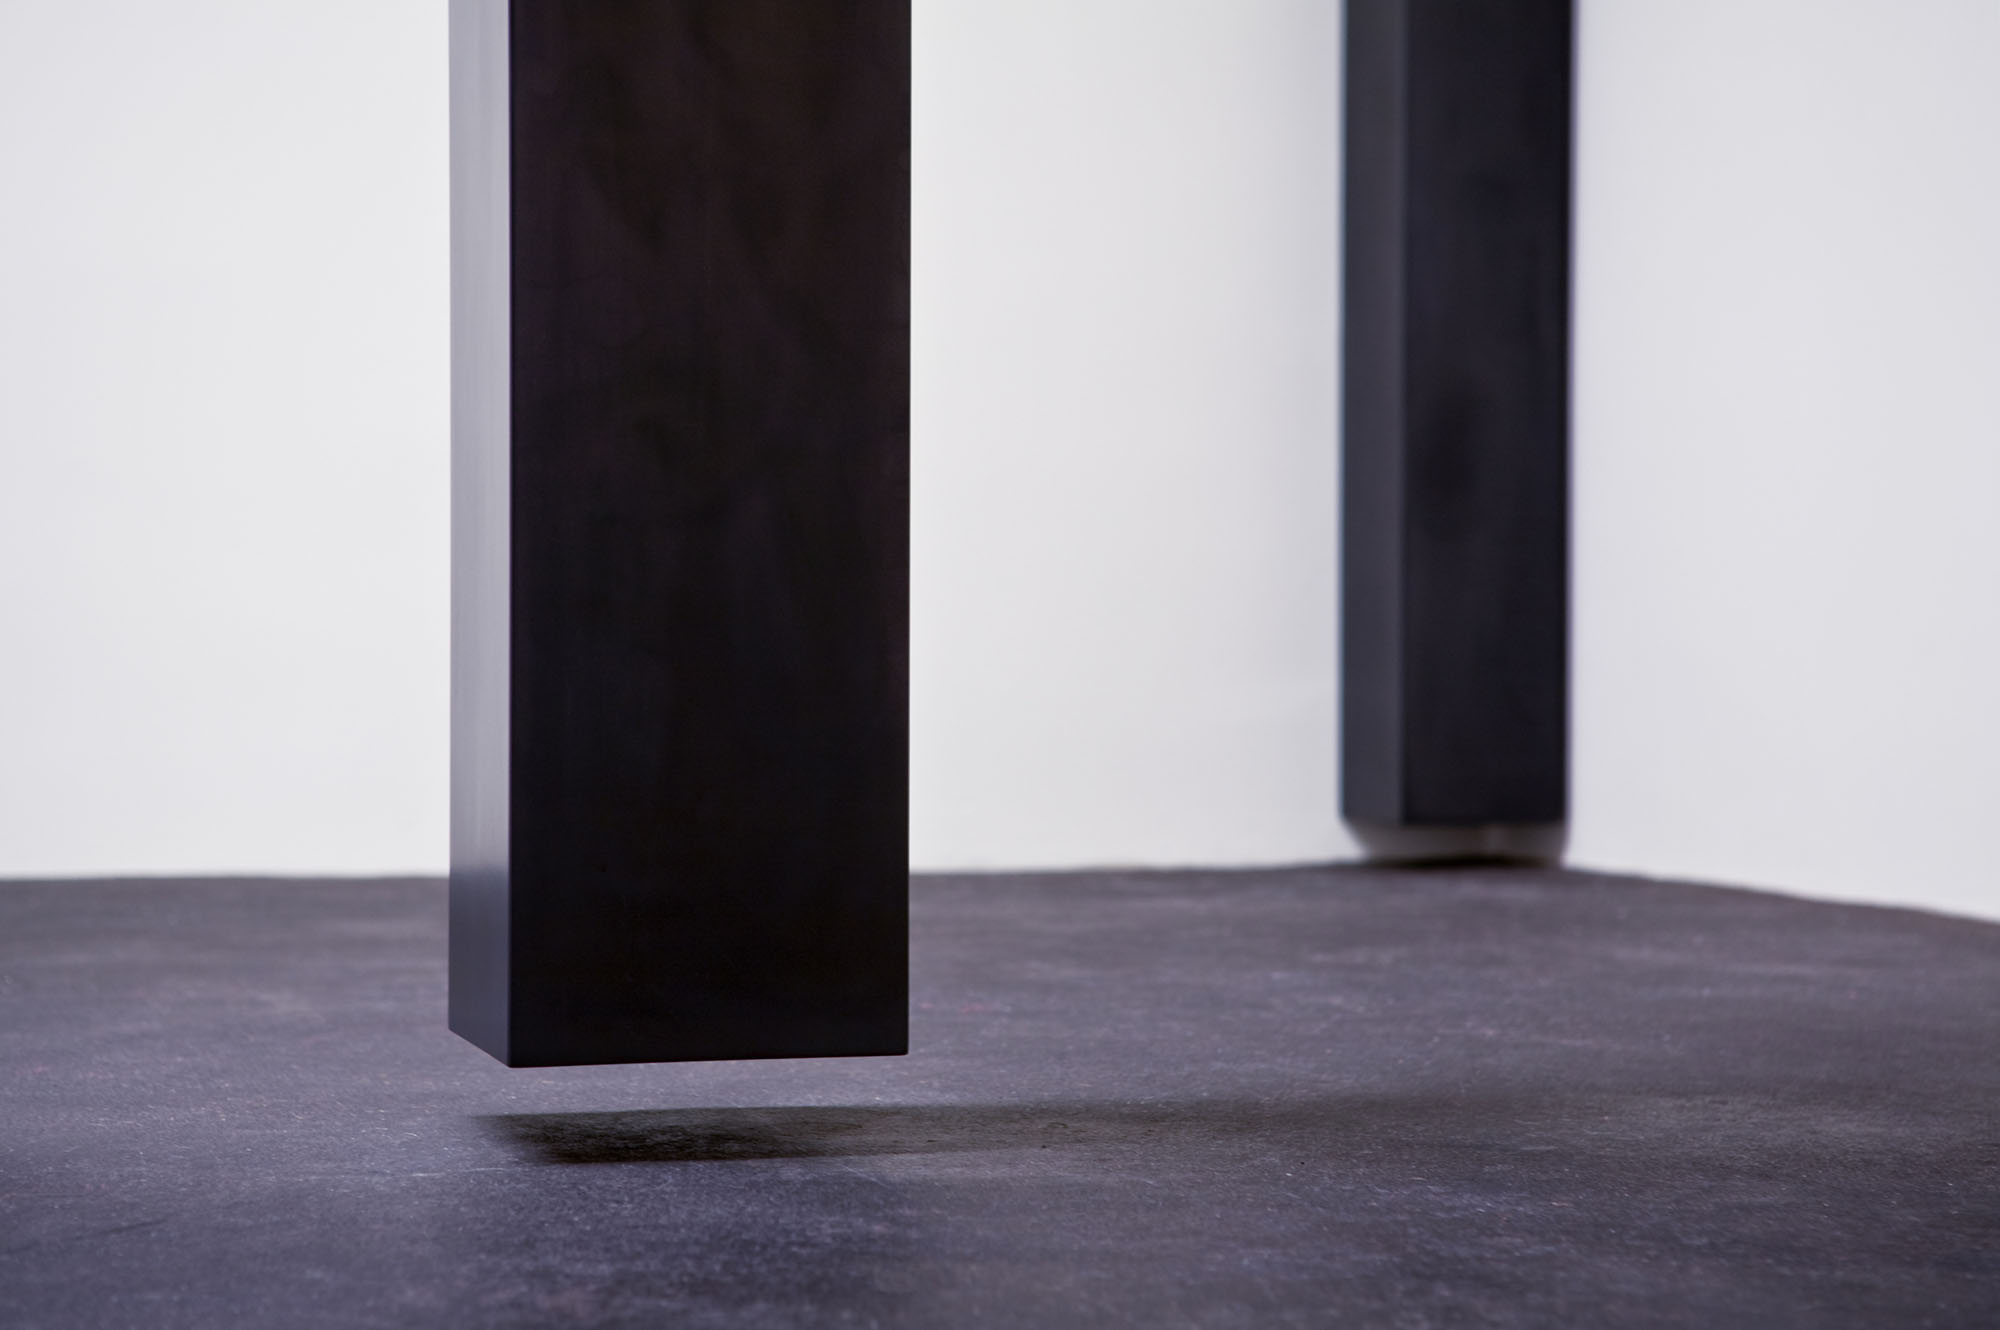 """Floating Column, 2008 (detail view)  Solid graphite, 14' x 10"""" x 9.5""""  Lannan Foundation collection. Photo: Jamey Stillings"""